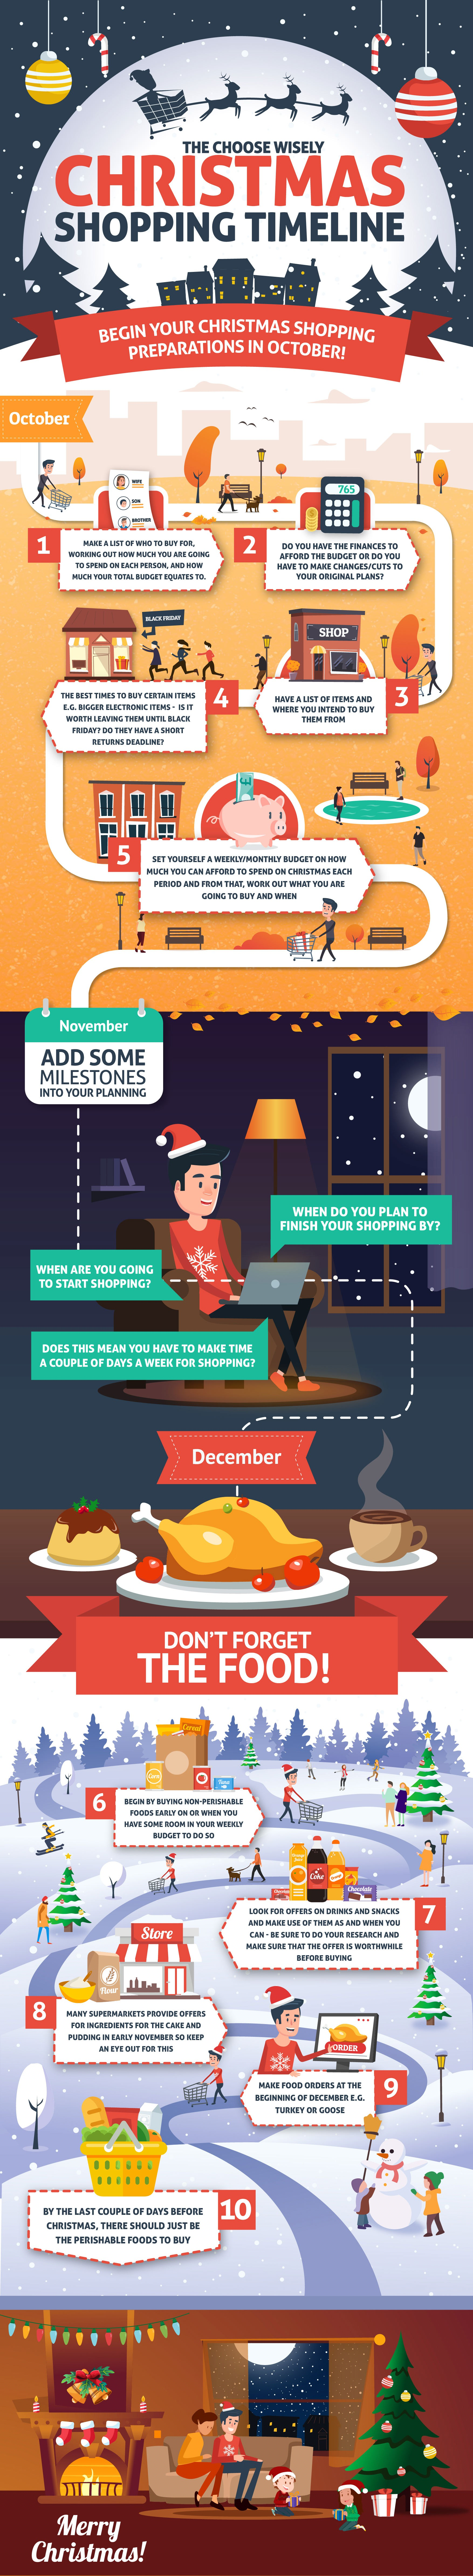 Illustrate a Christmas preparation timeline to help people make the most of their Christmas budget